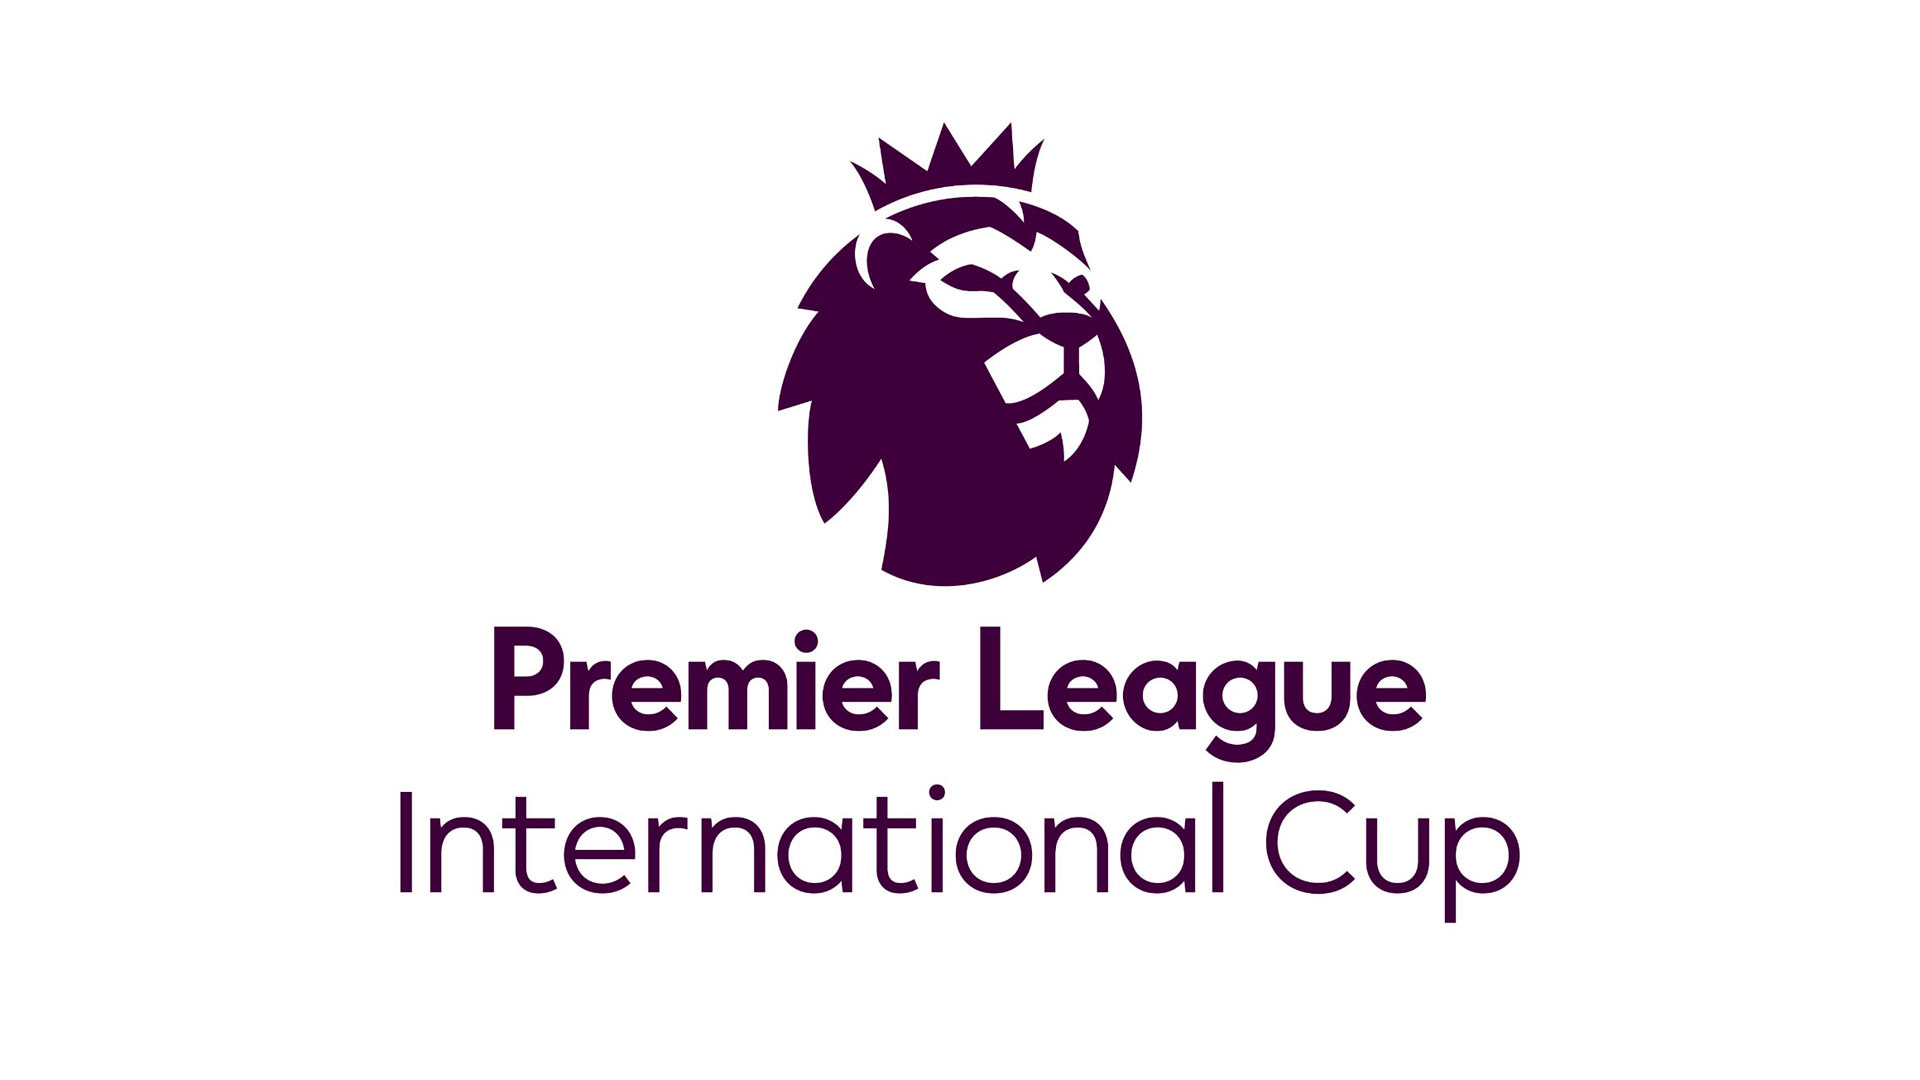 Group draw of the Premier League International Cup